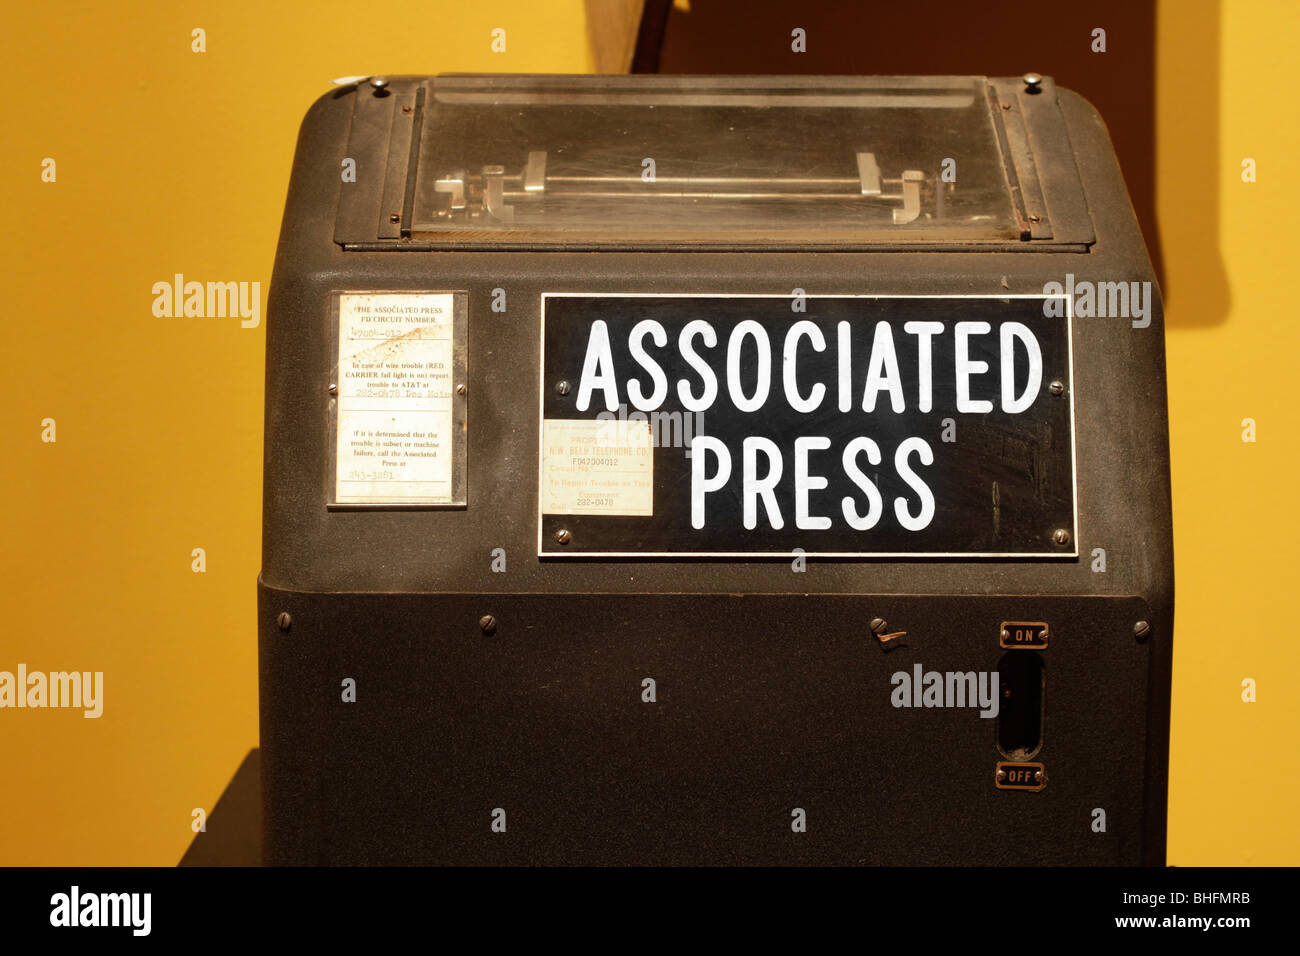 Teletype machine used in newsrooms during much of the 20th century - Stock Image